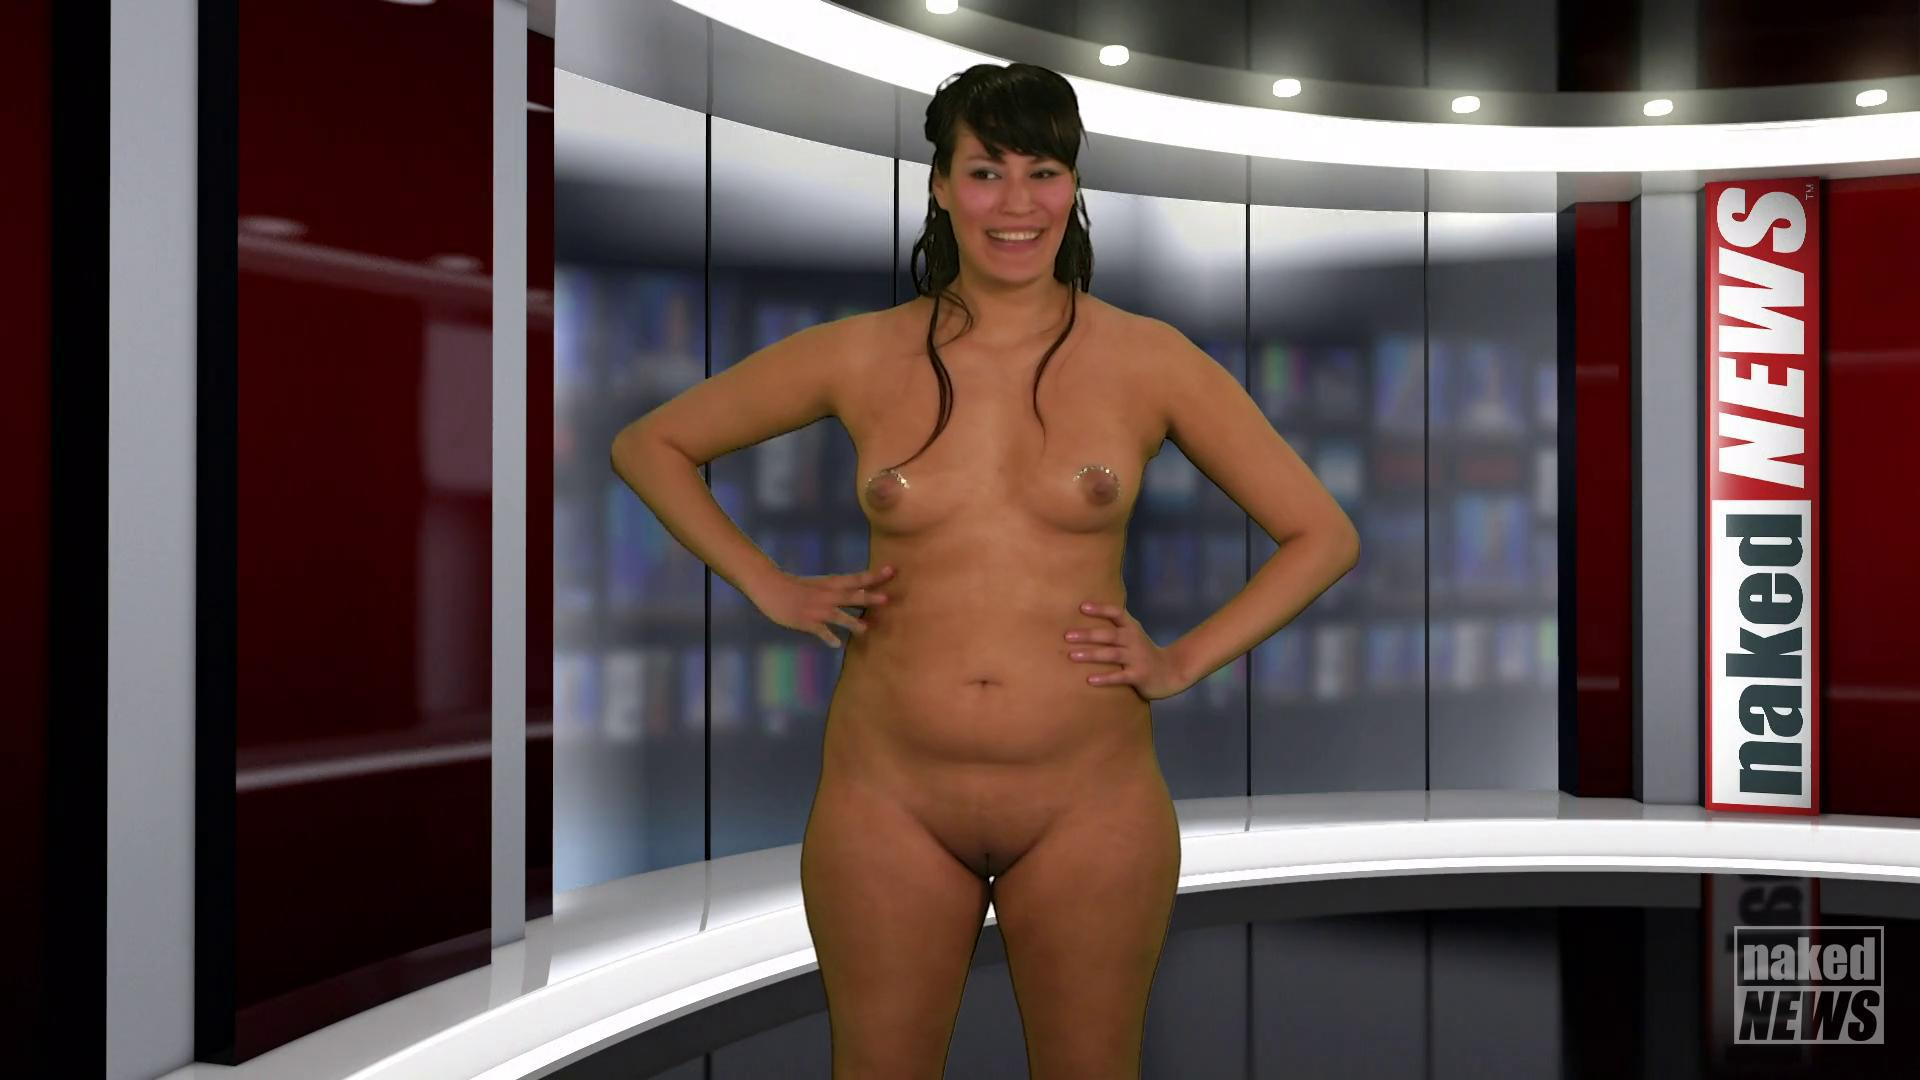 topless-erie-news-anchor-naked-pics-sluts-nude